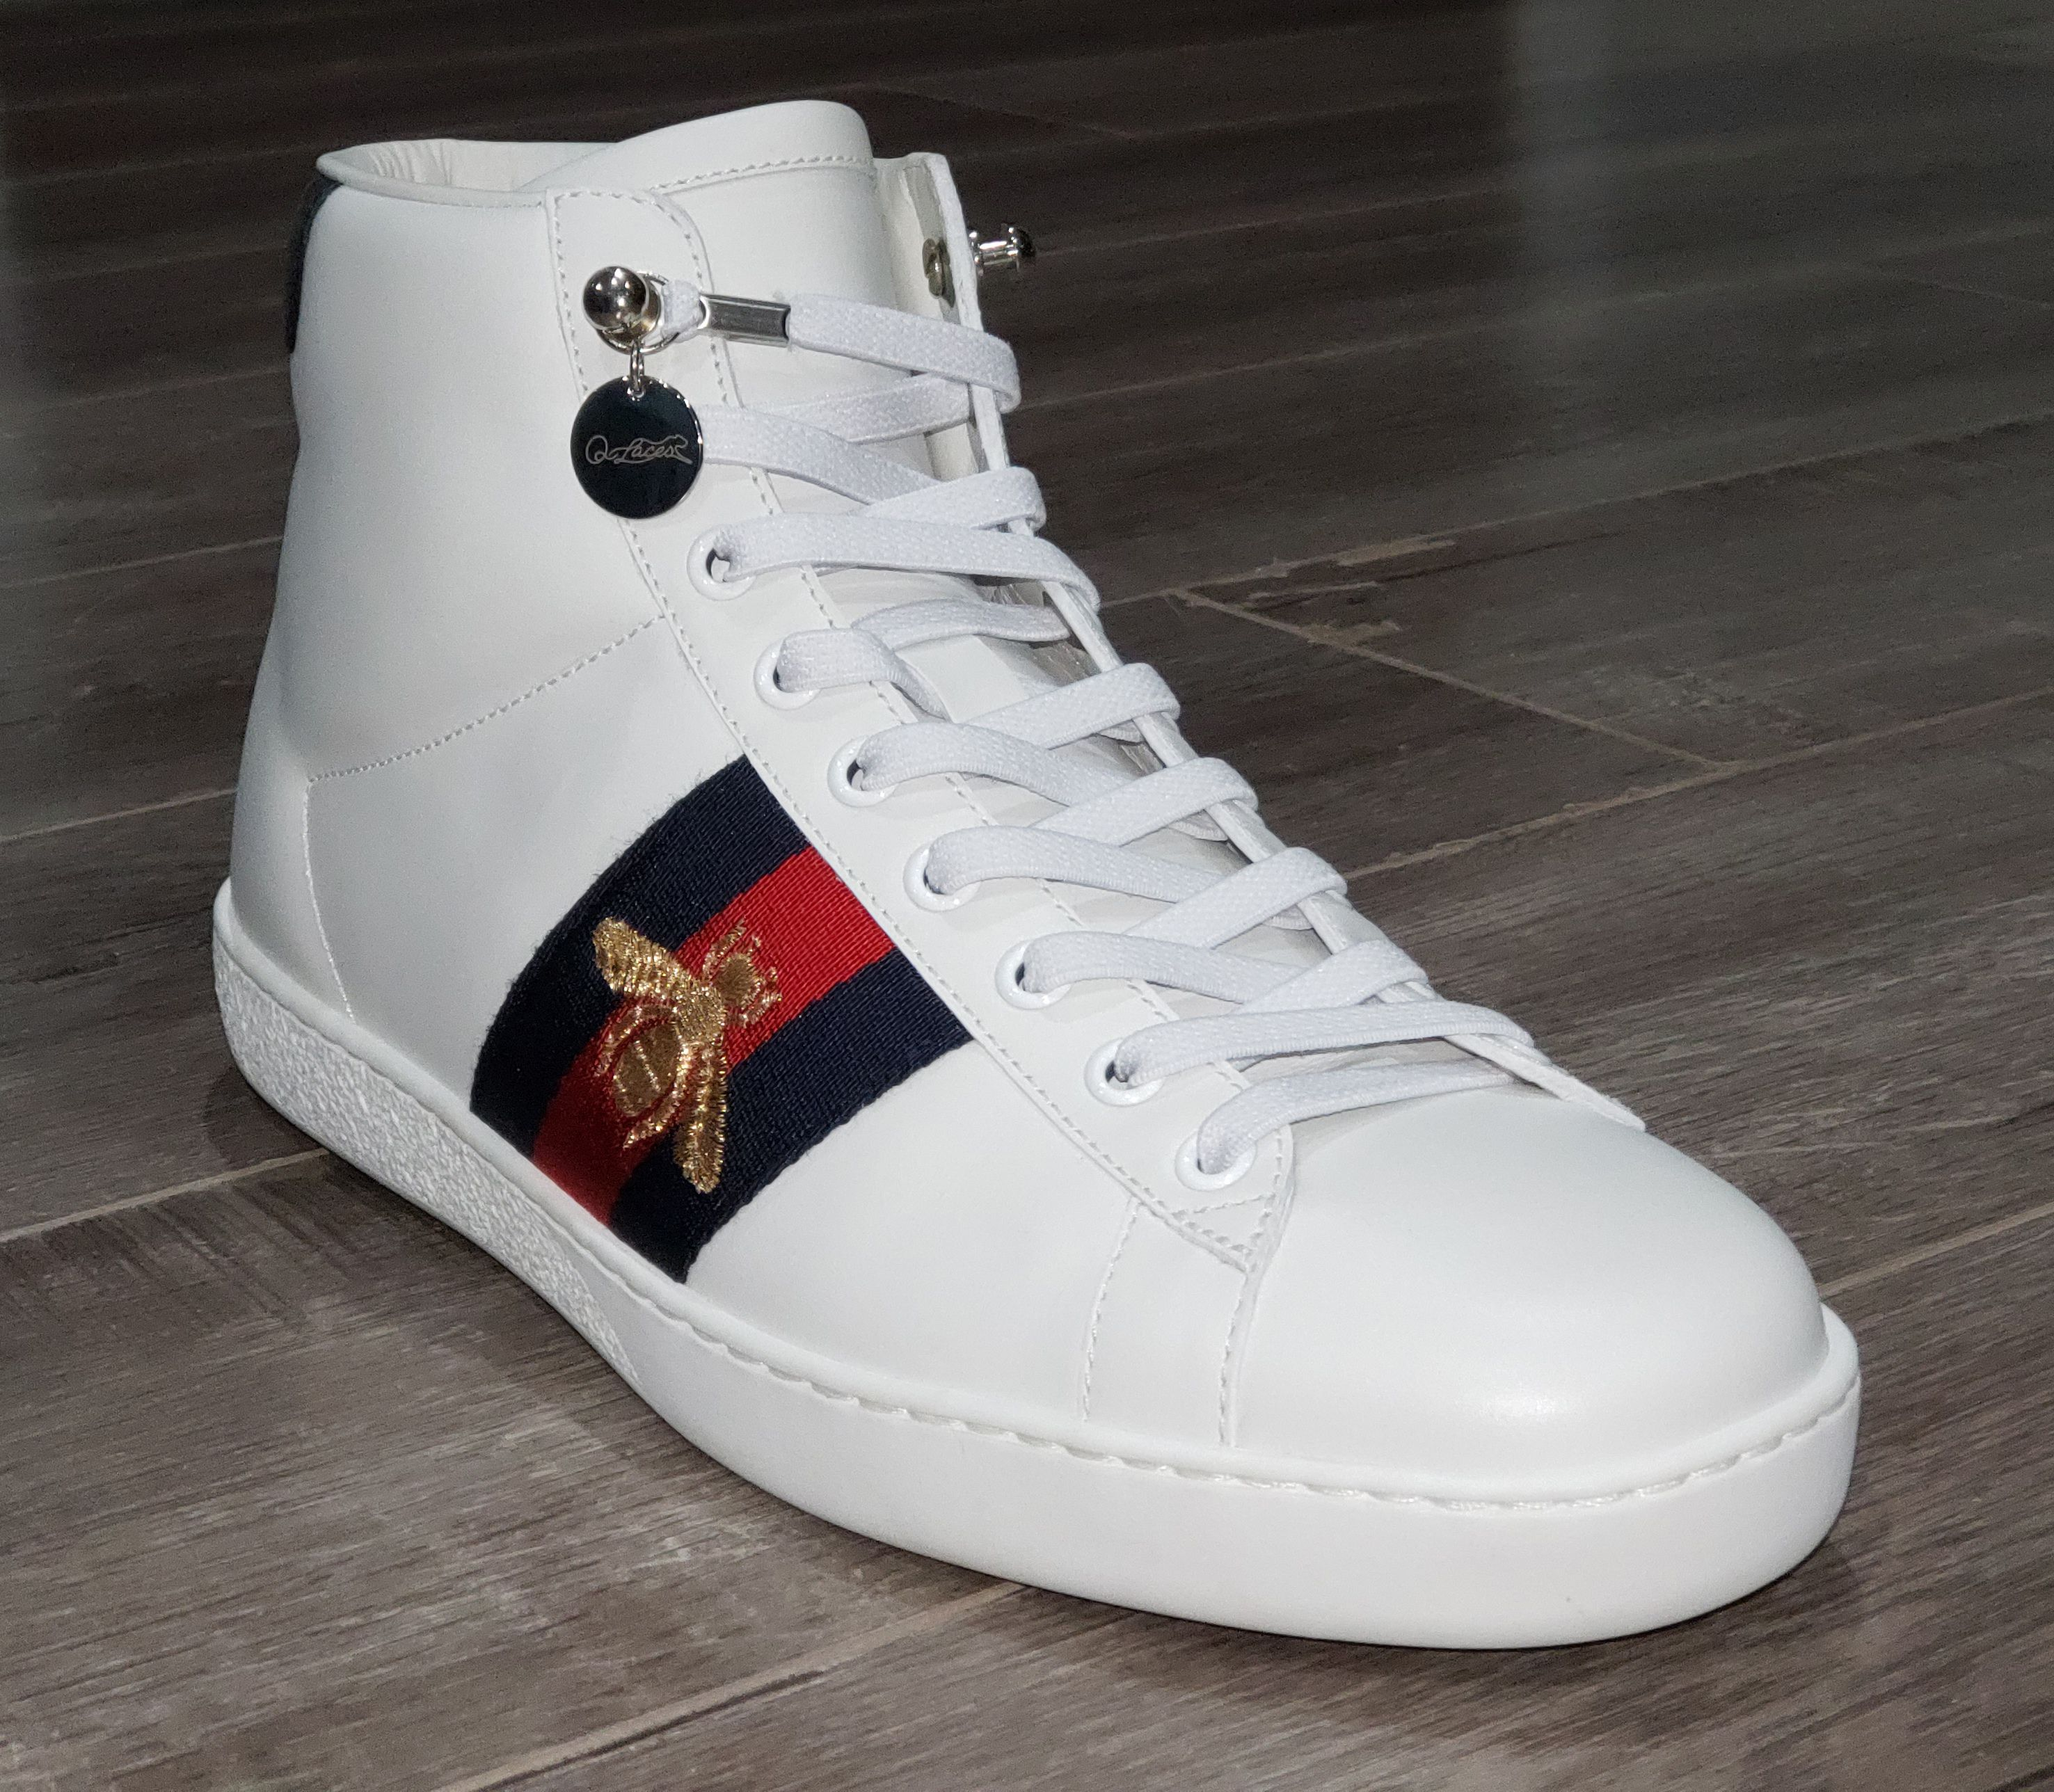 Shoe laces, Gucci high top sneakers